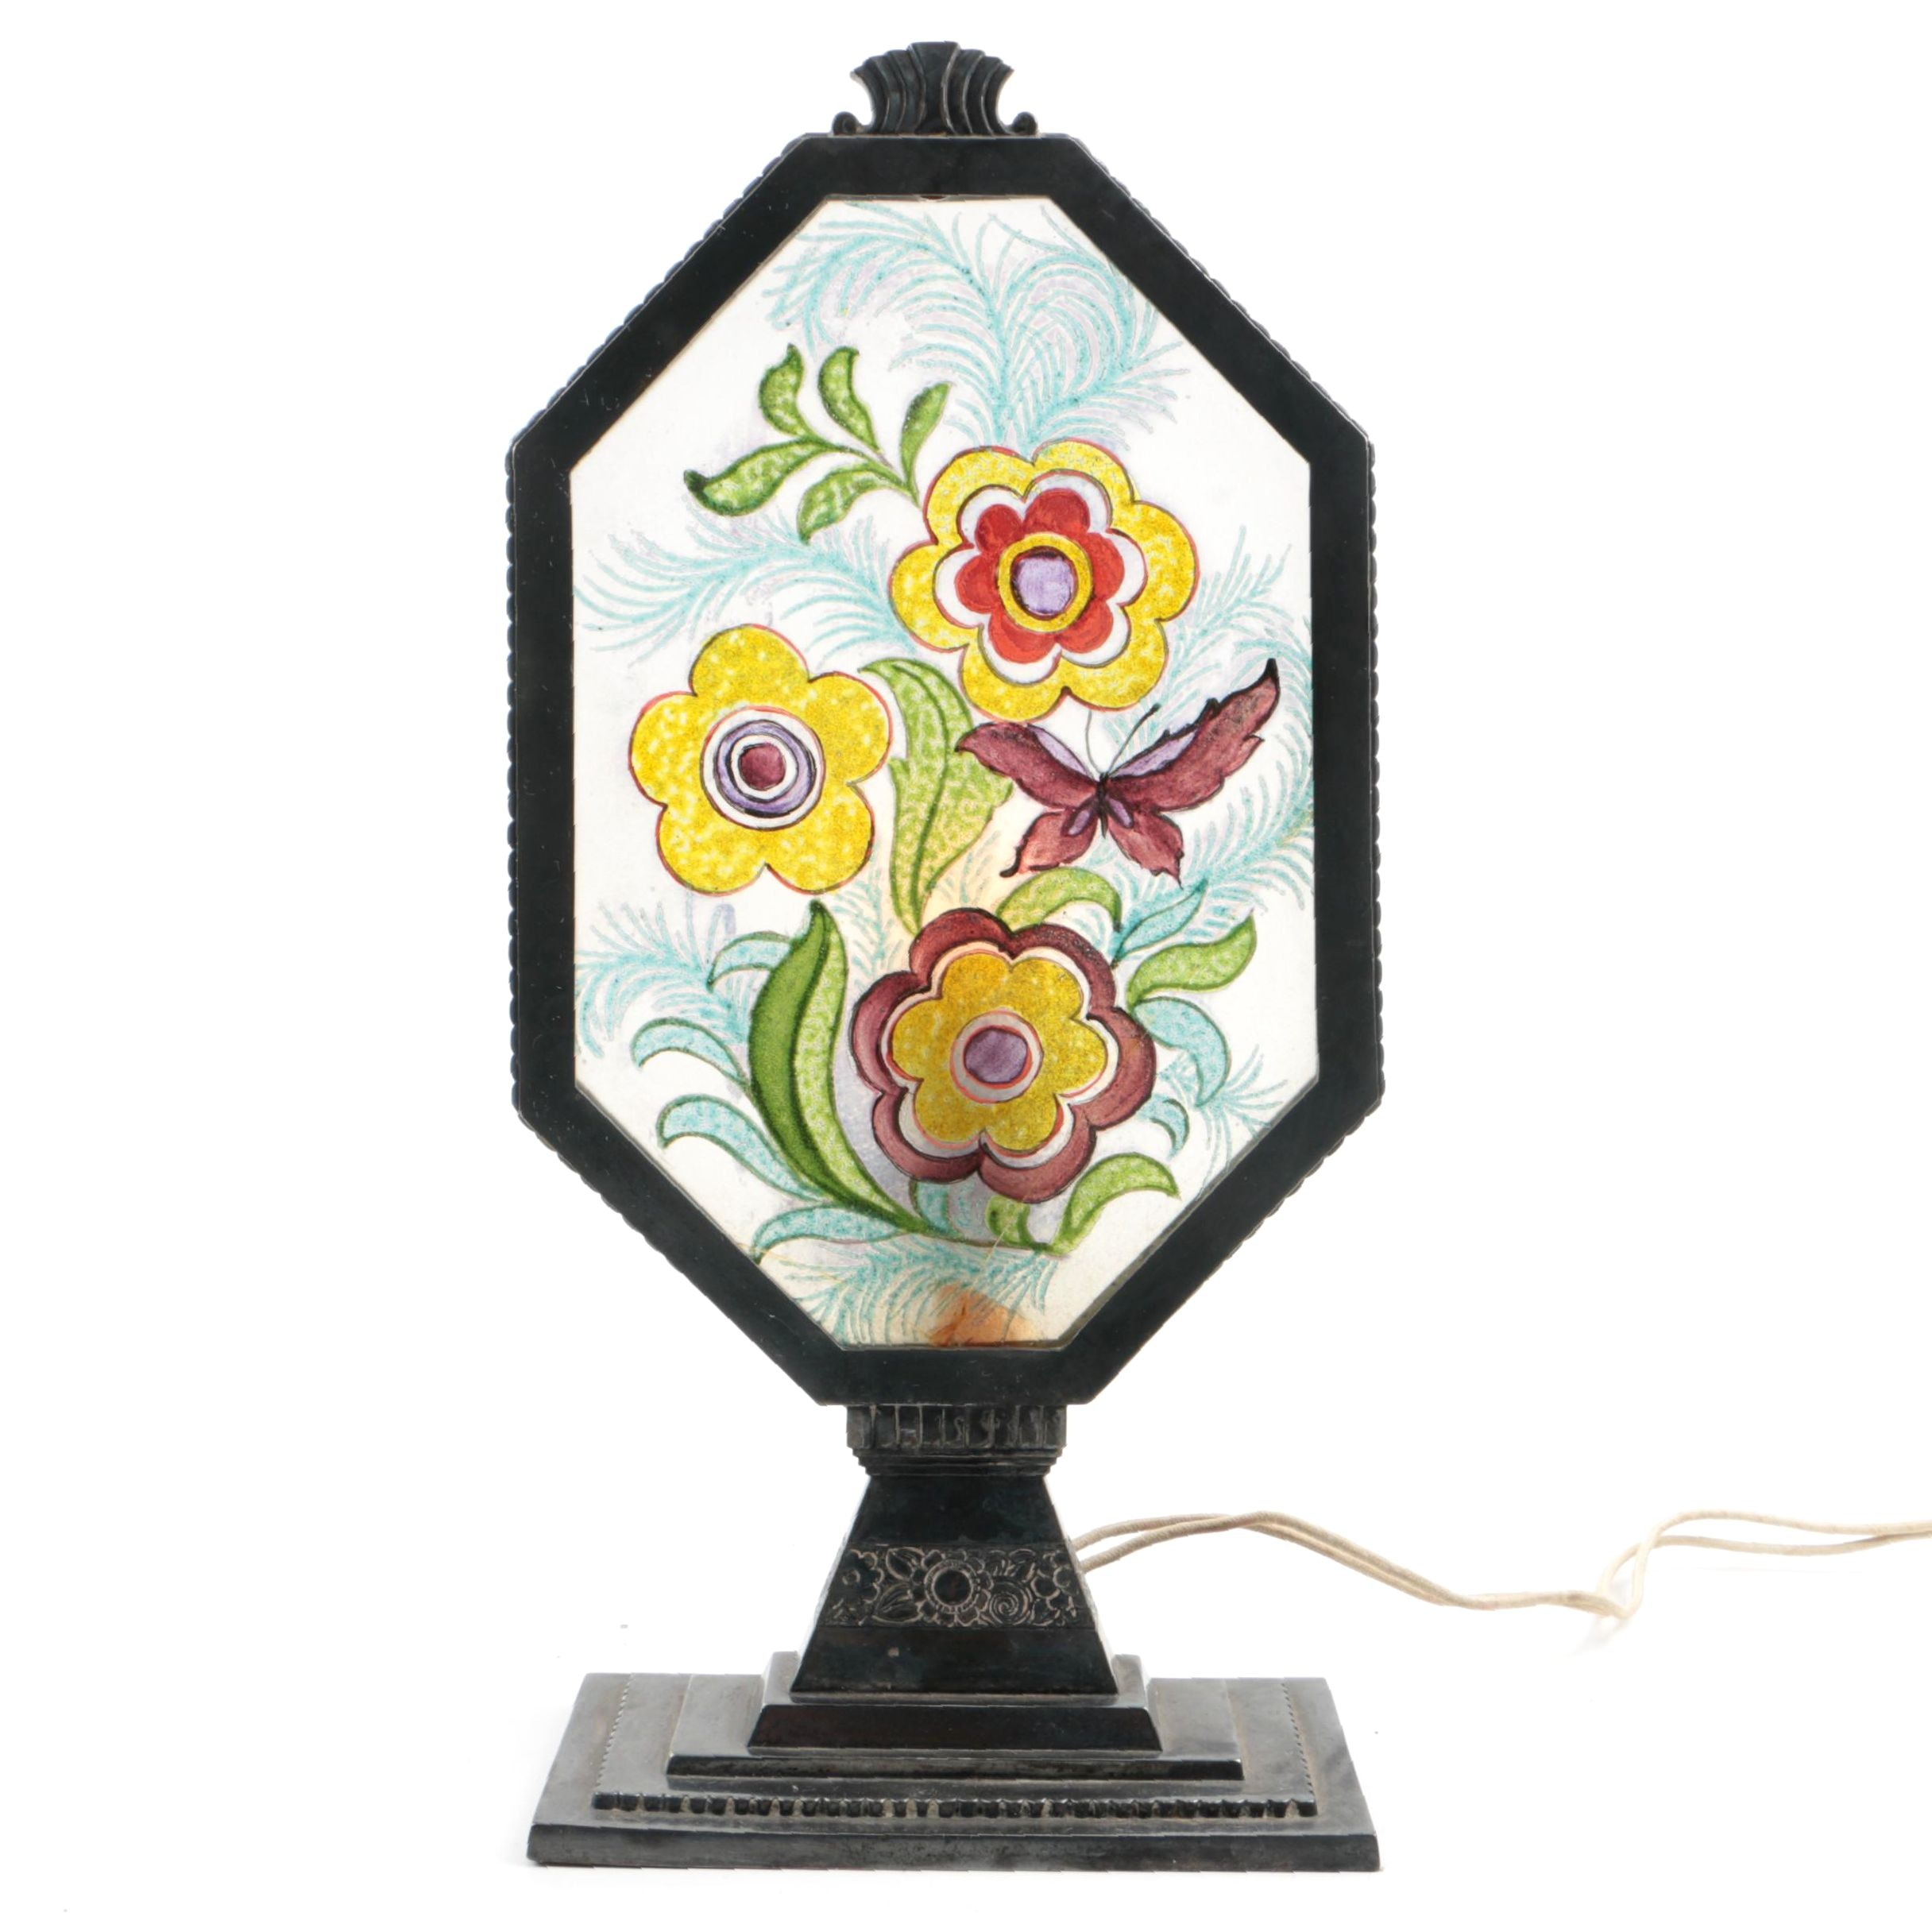 Pairpoint Radio Lamp with Floral Painted Glass Panel